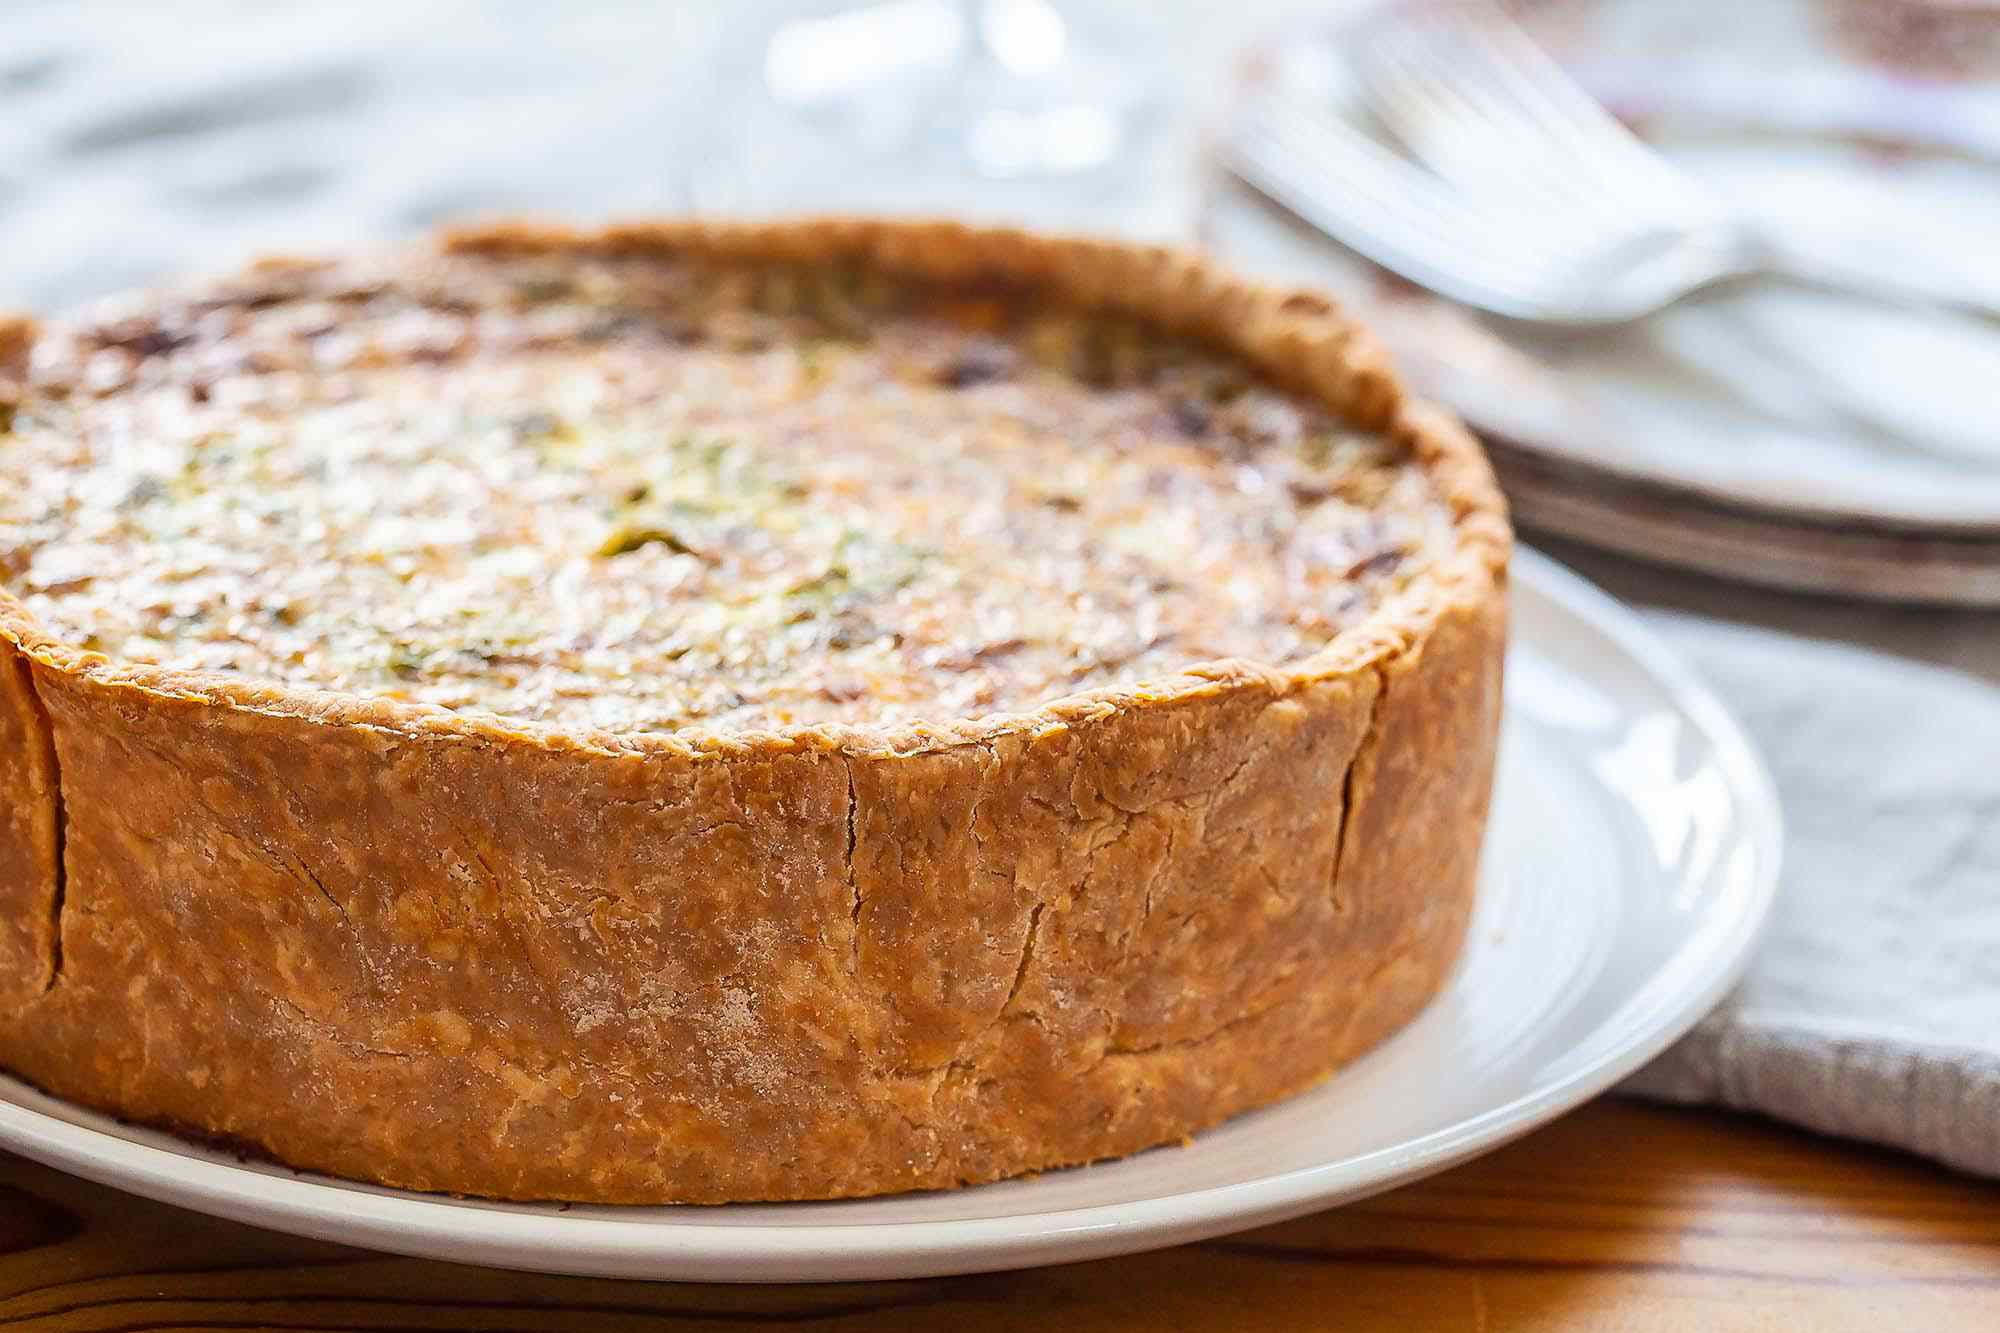 A mile high quiche is on a white platter. The crust is golden brown as is the filling. Partial view of plates and forks to the upper left of the quiche.